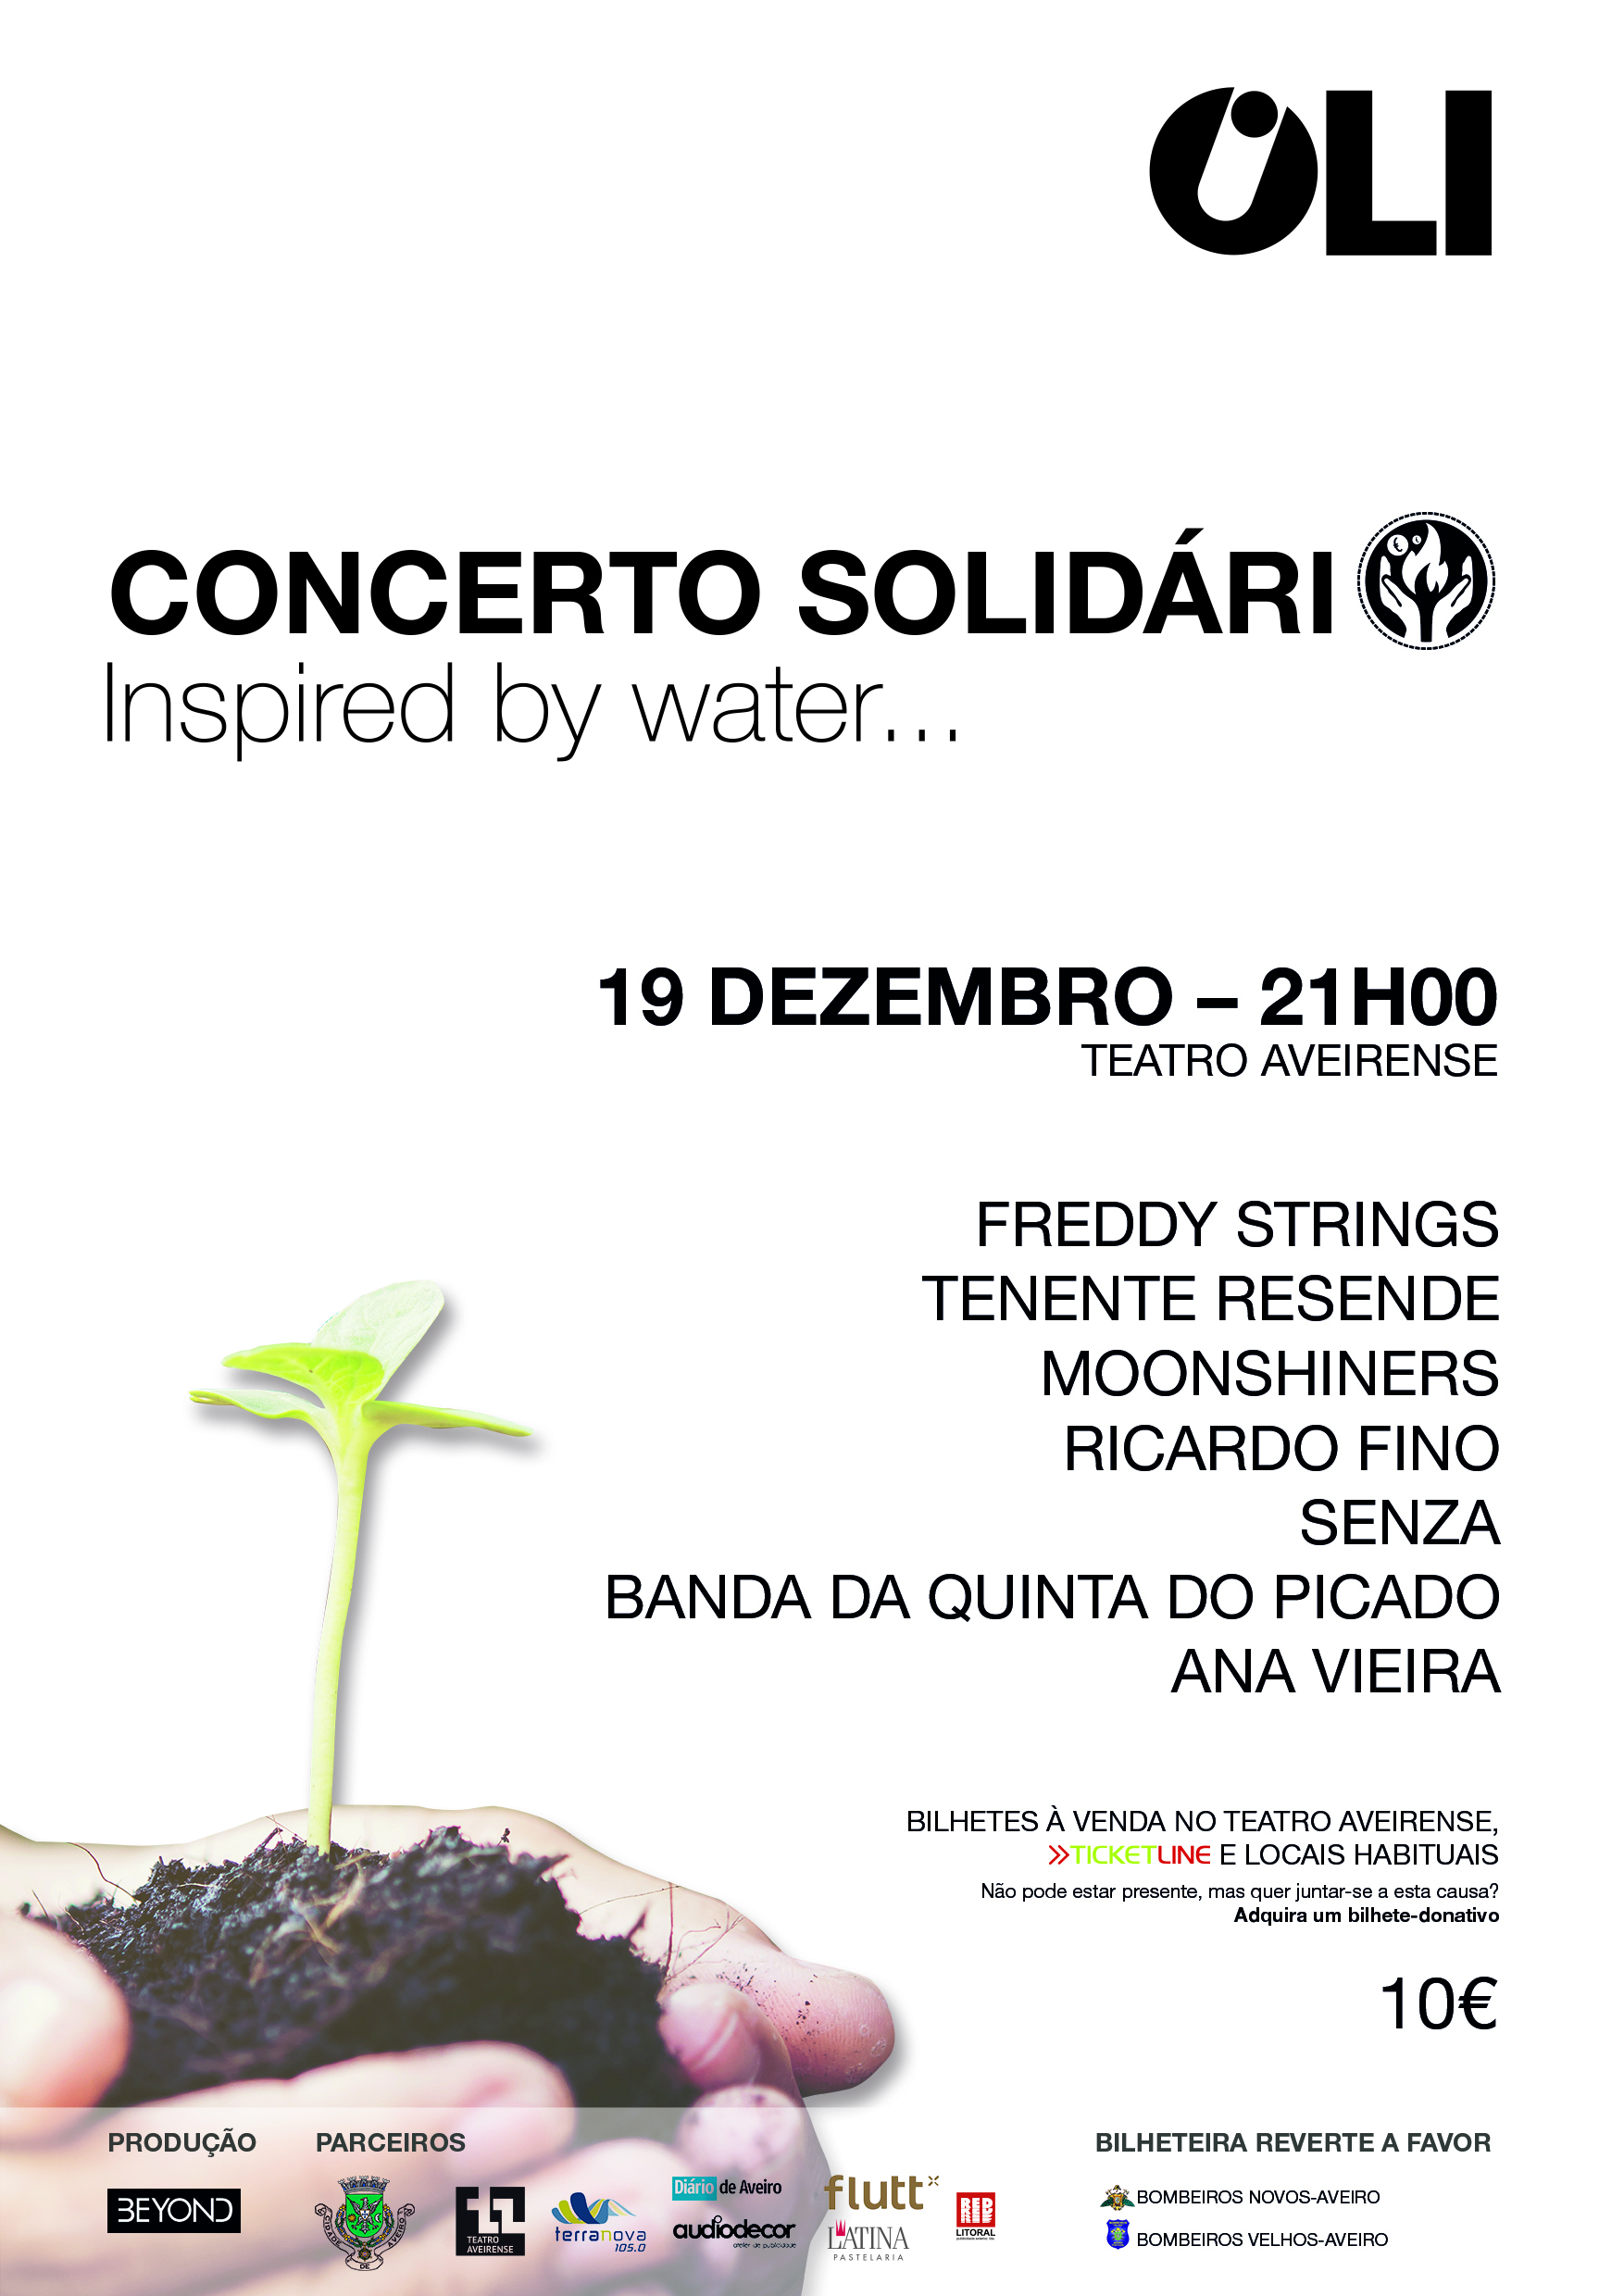 CONCERTO SOLIDÁRIO INSPIRED BY WATER - BILHETES